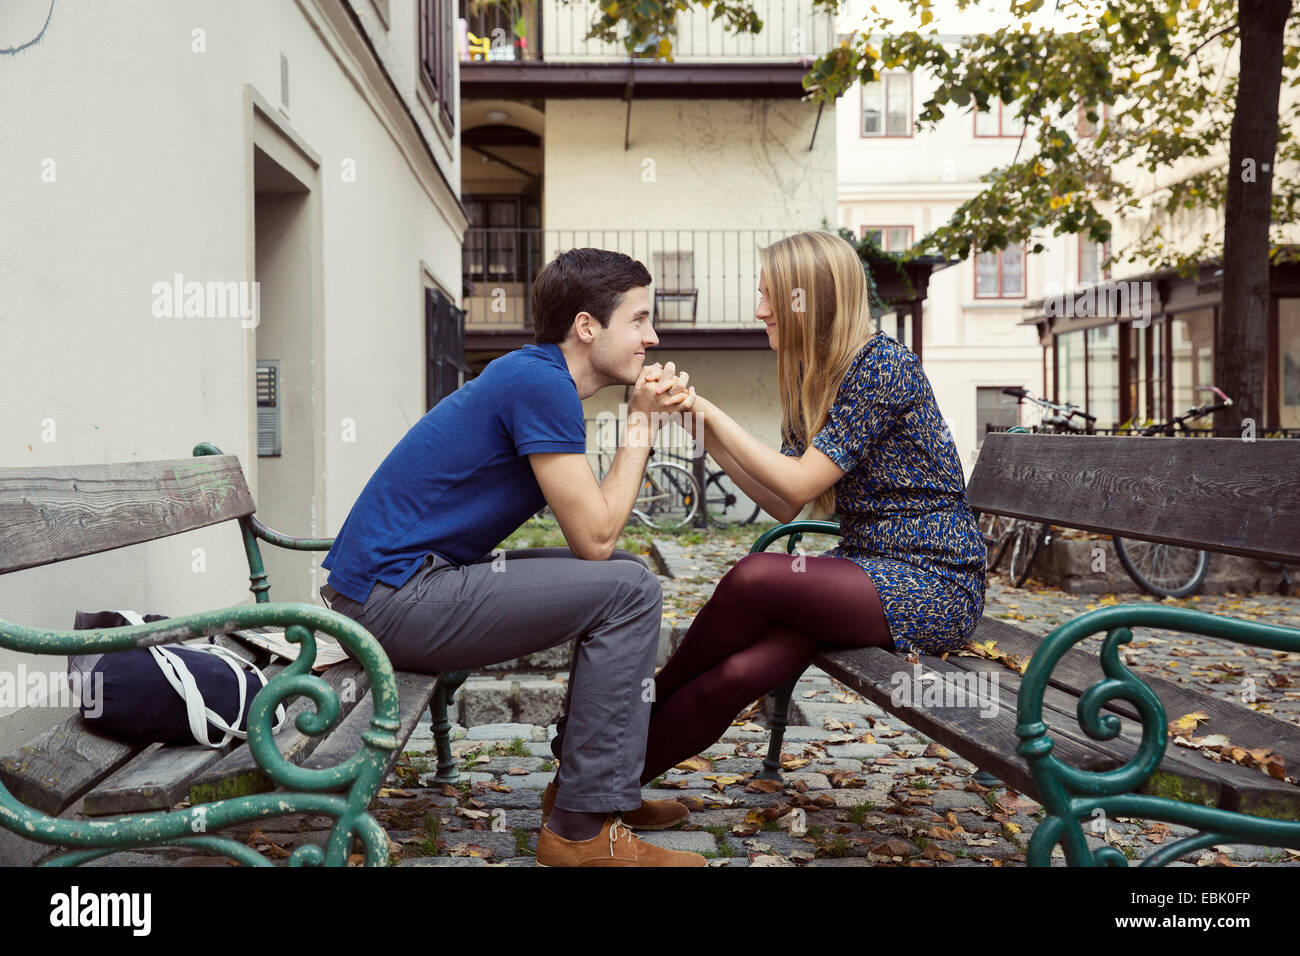 Young couple holding hands from opposite park benches - Stock Image